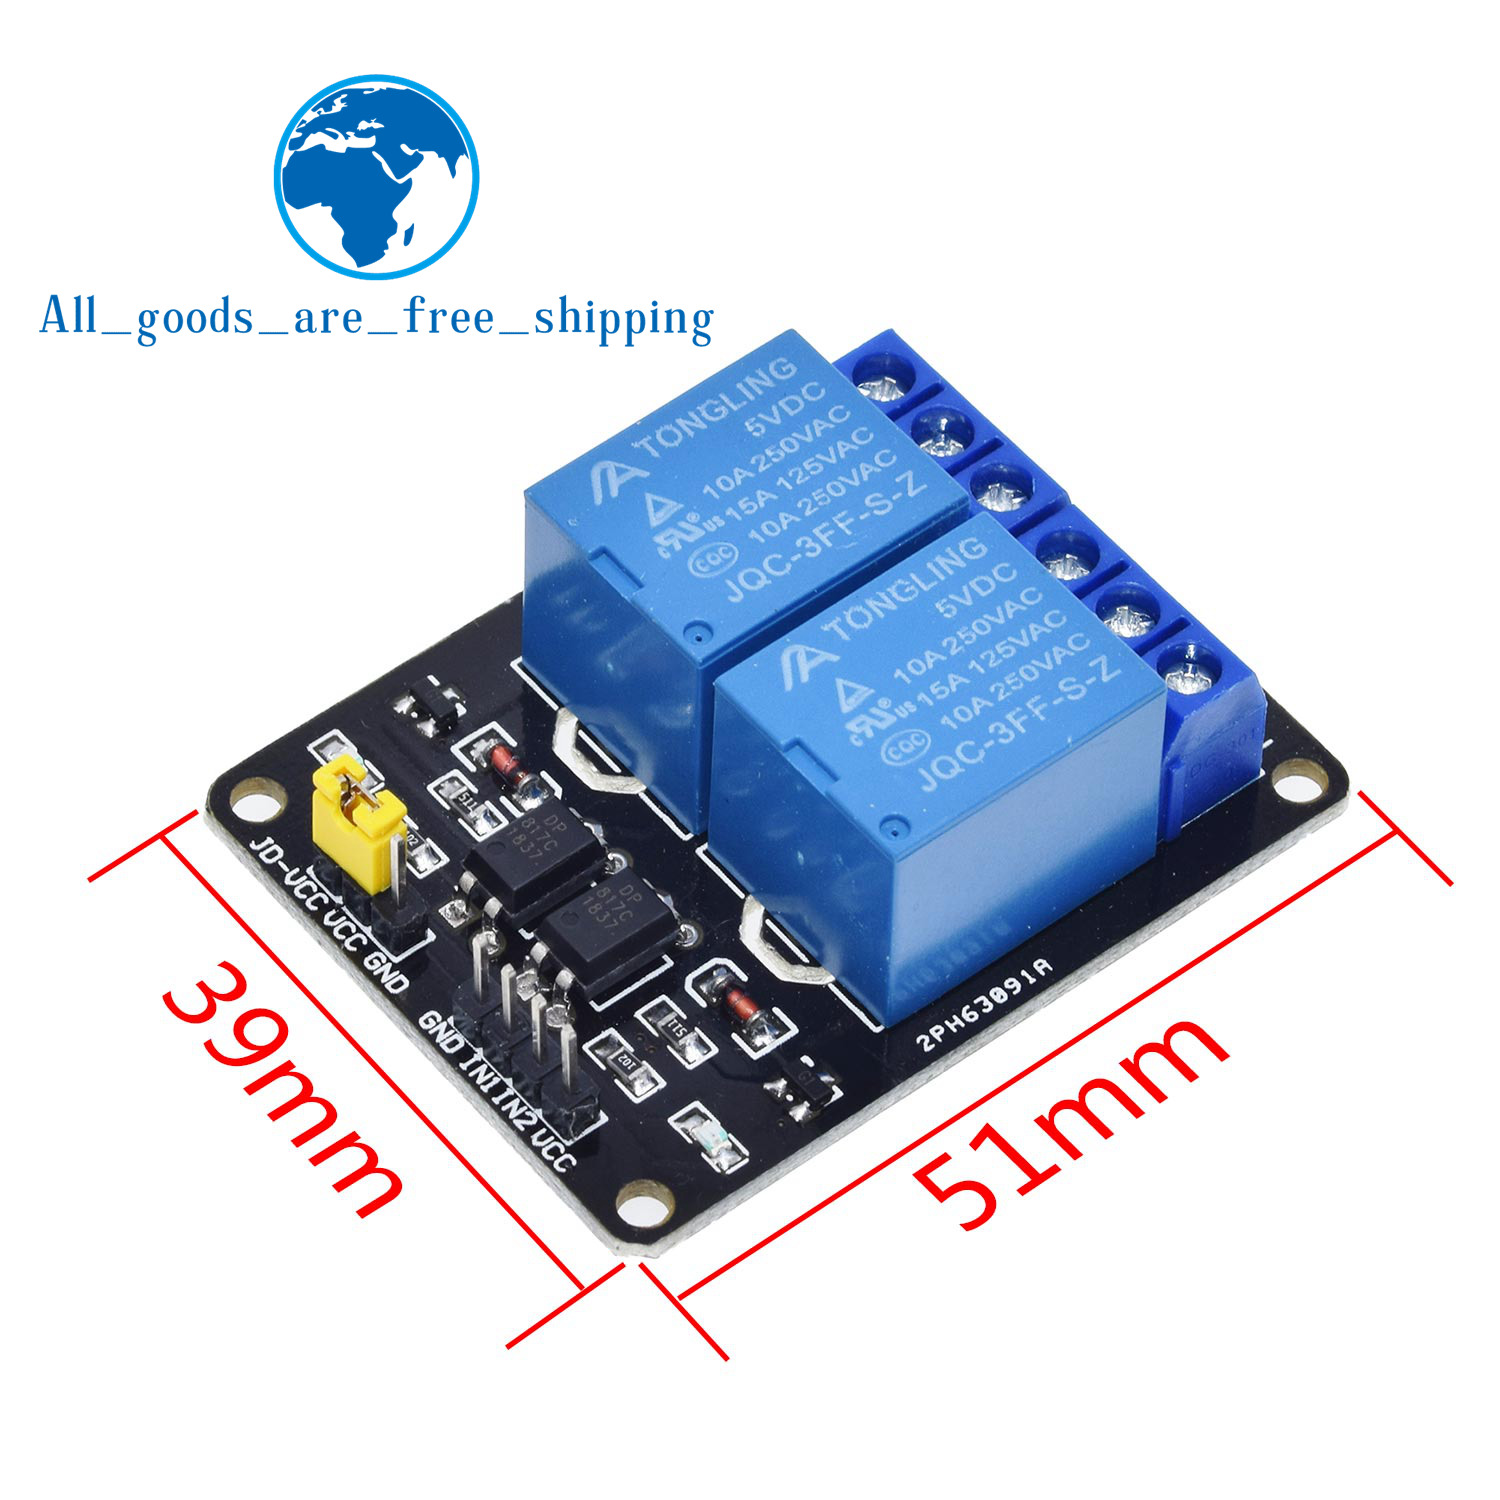 TZT 1pcs 5v 12v 1 2 4 6 8 channel relay module with optocoupler. Relay Output 1 2 4 6 8 way relay module for arduino In stock 6